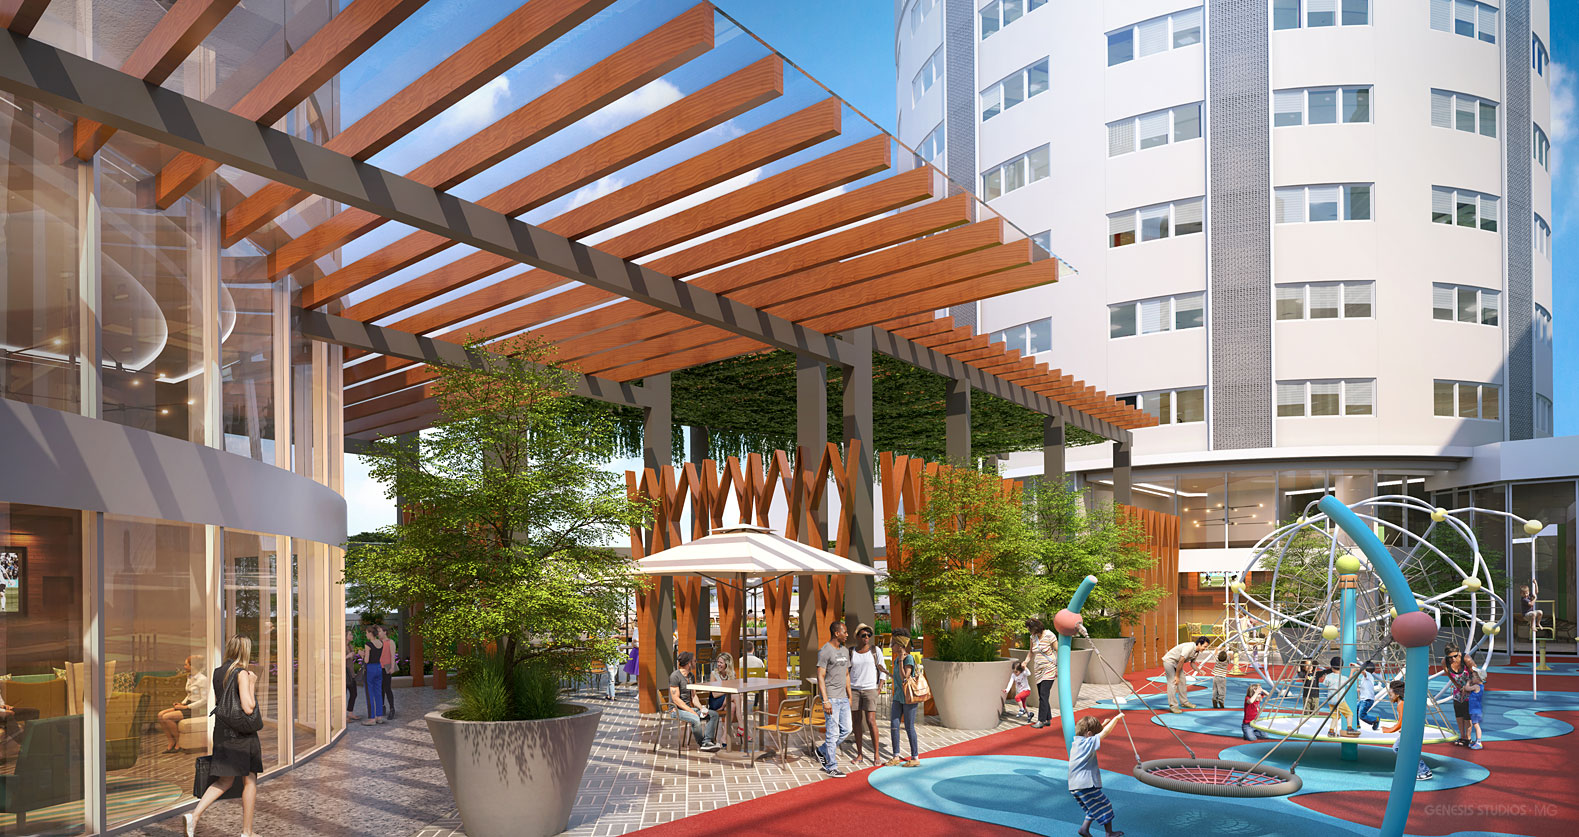 3D Photorealistic Architectural Renderings of Tijuca Shopping Mall Playground for CallisonRTKL